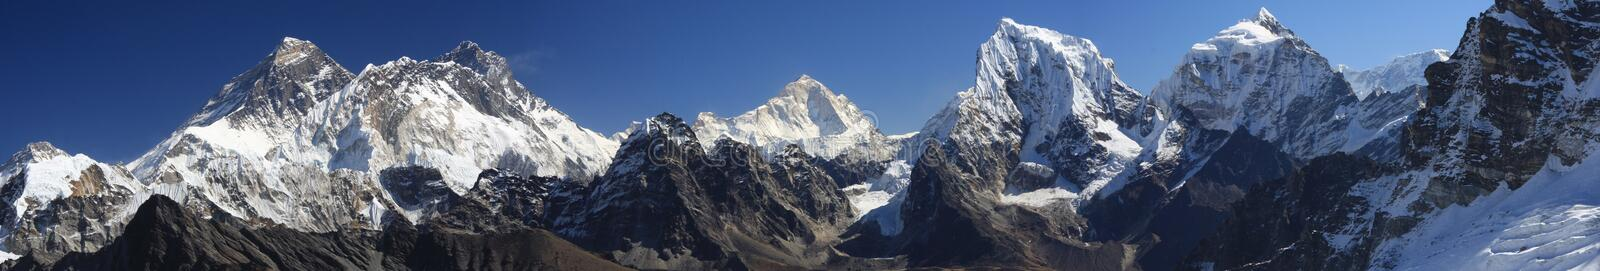 Panorama of Everest stock image